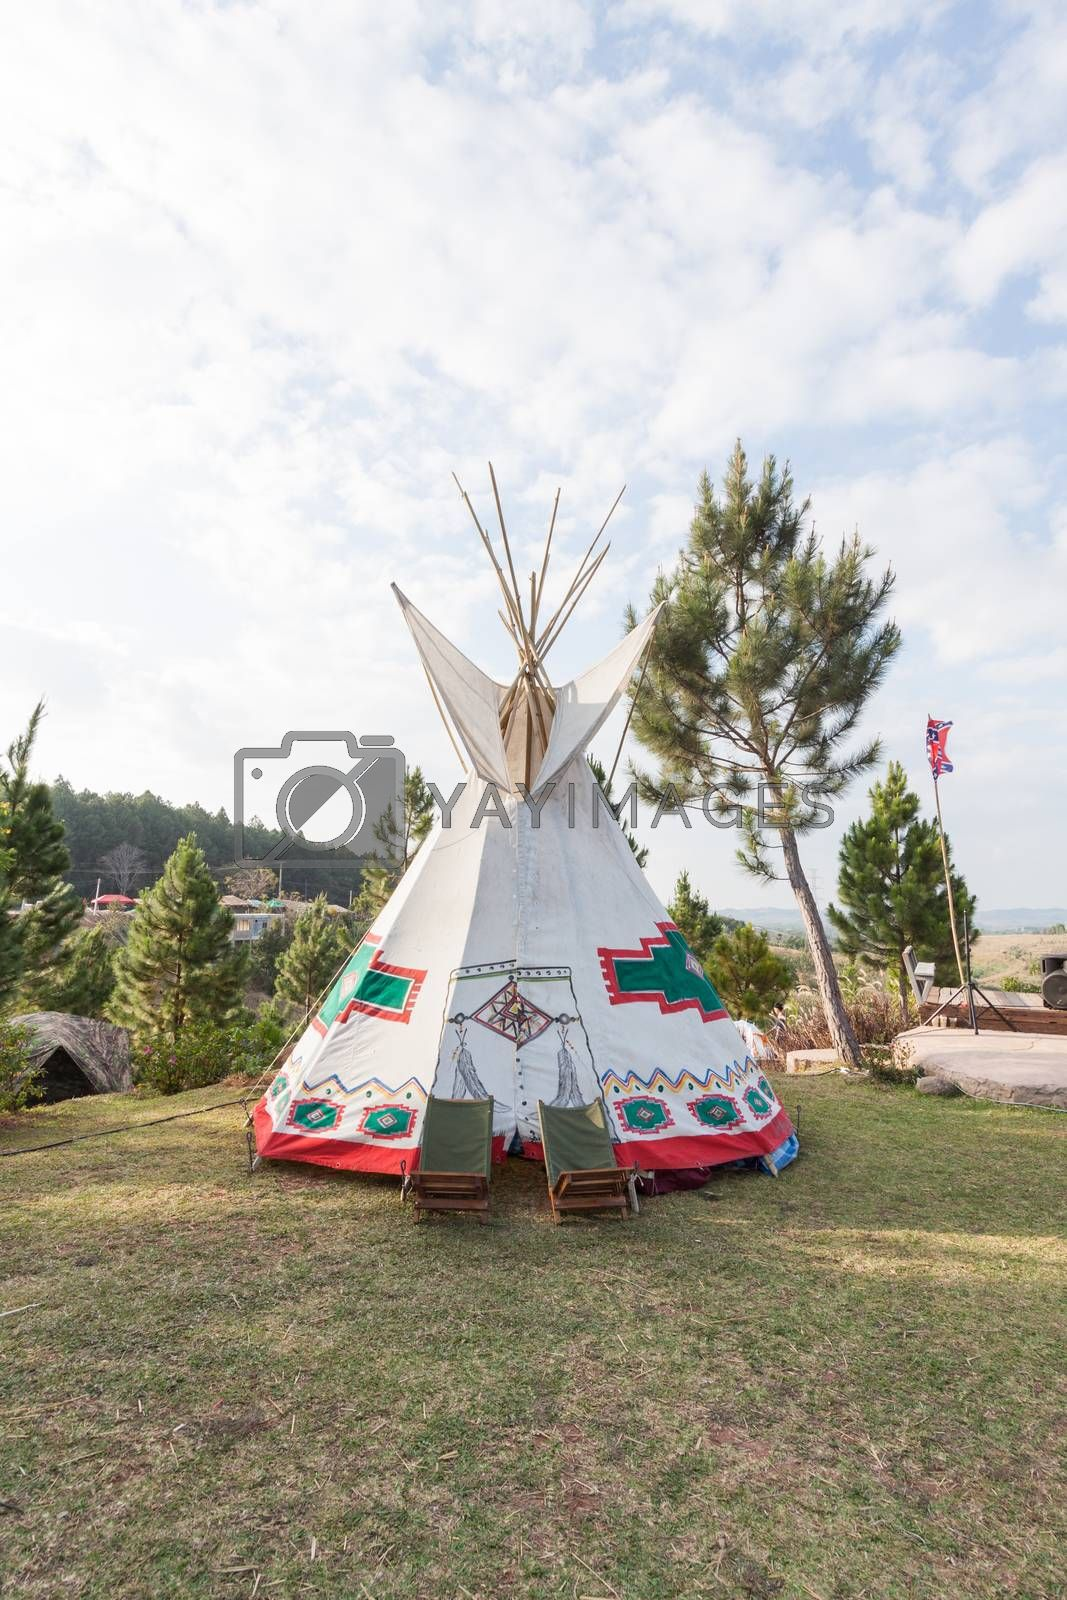 Royalty free image of An indian teepee set up in a meadow among pine wood by kritsada1992